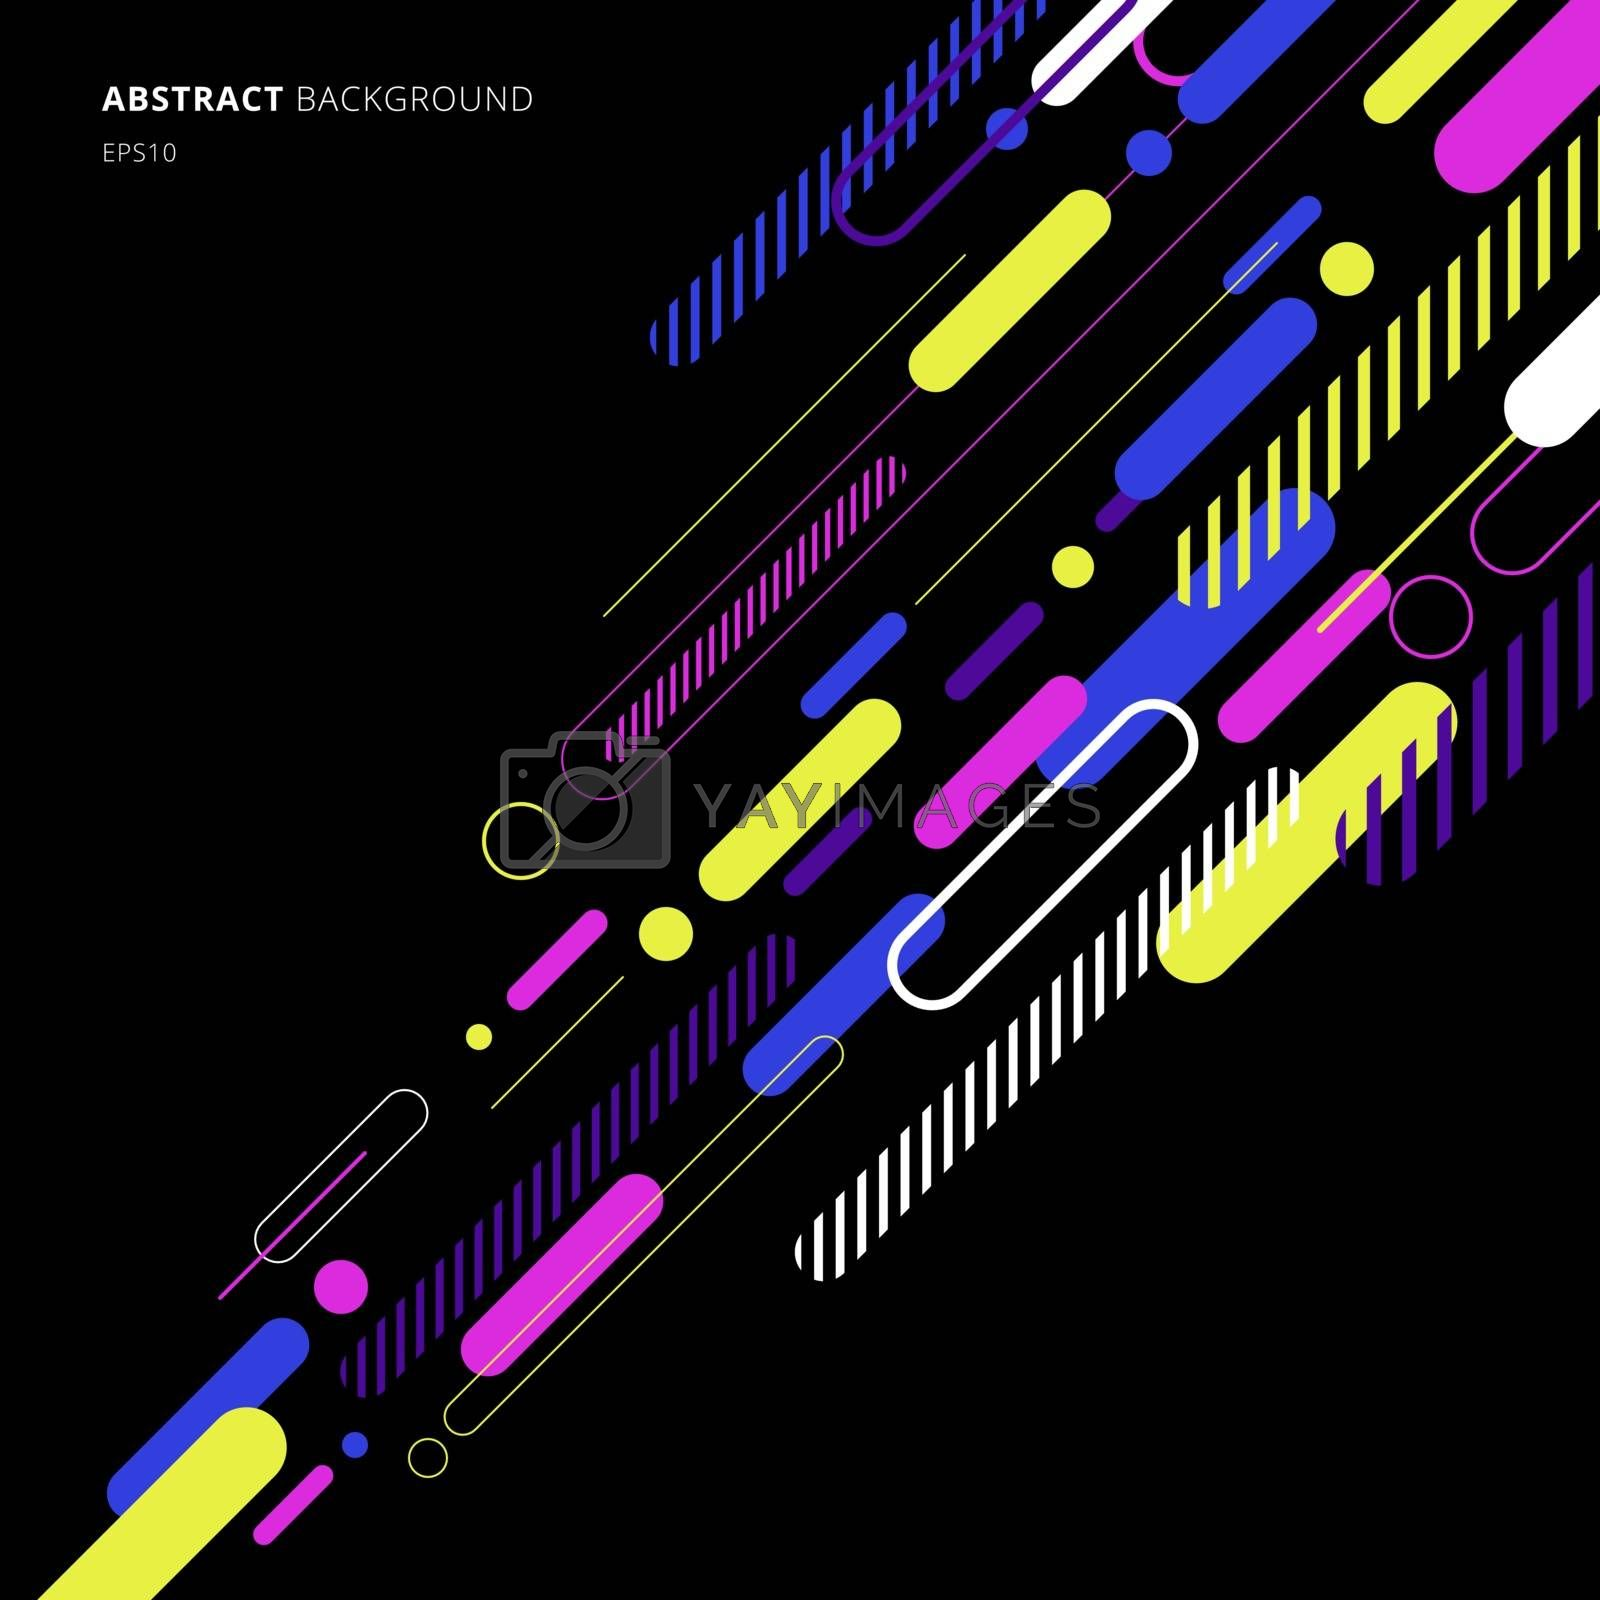 Abstract elements dynamic rounded line diagonal pattern colorful on black background. Vector illustration